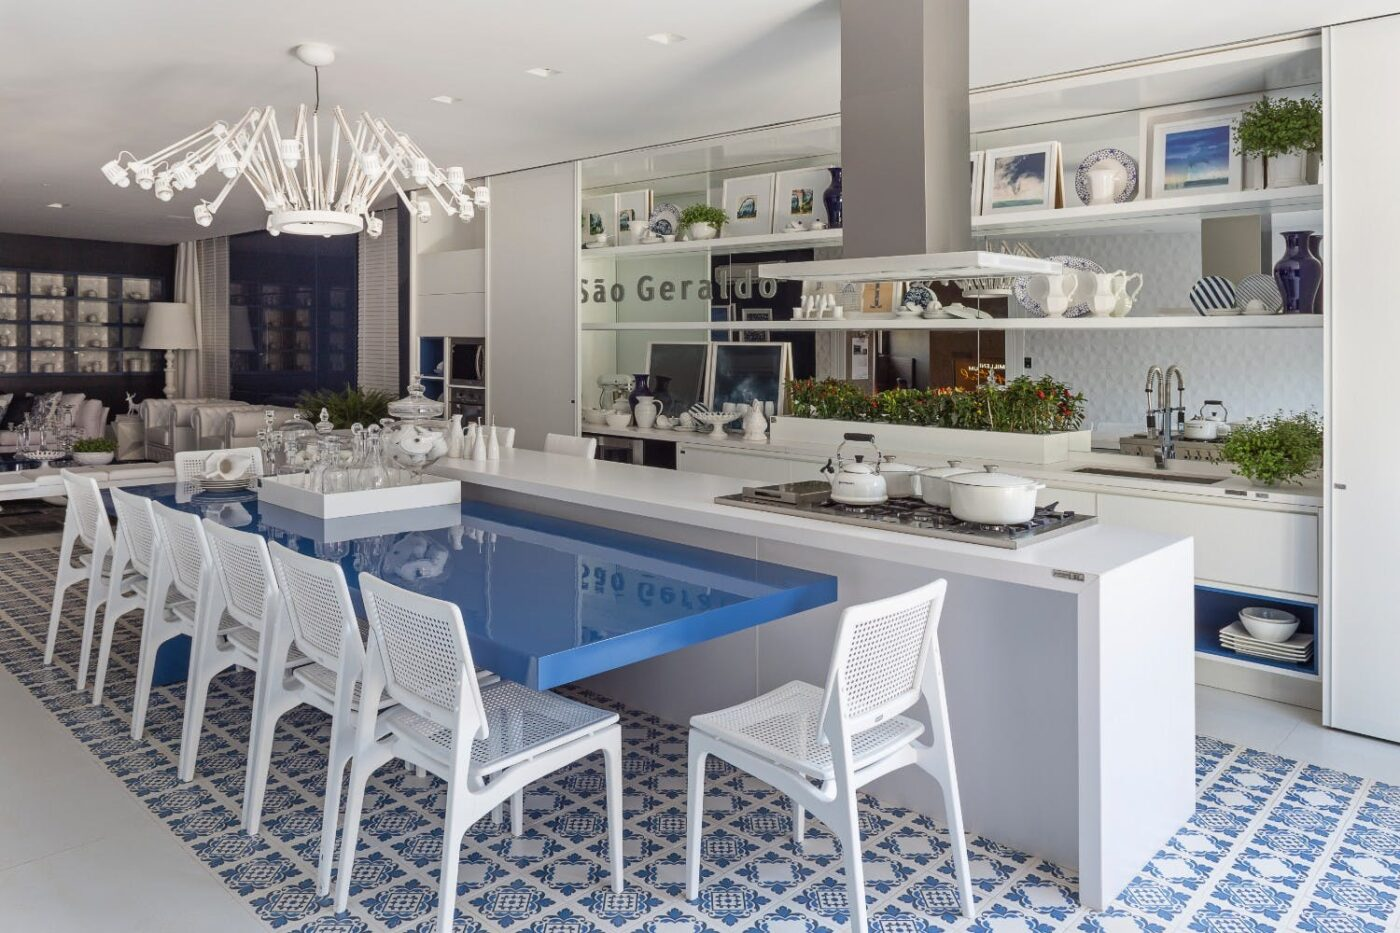 Image of RS9965 MG 5434 foto Haruo Mikami in The best floors for kitchens - Cosentino